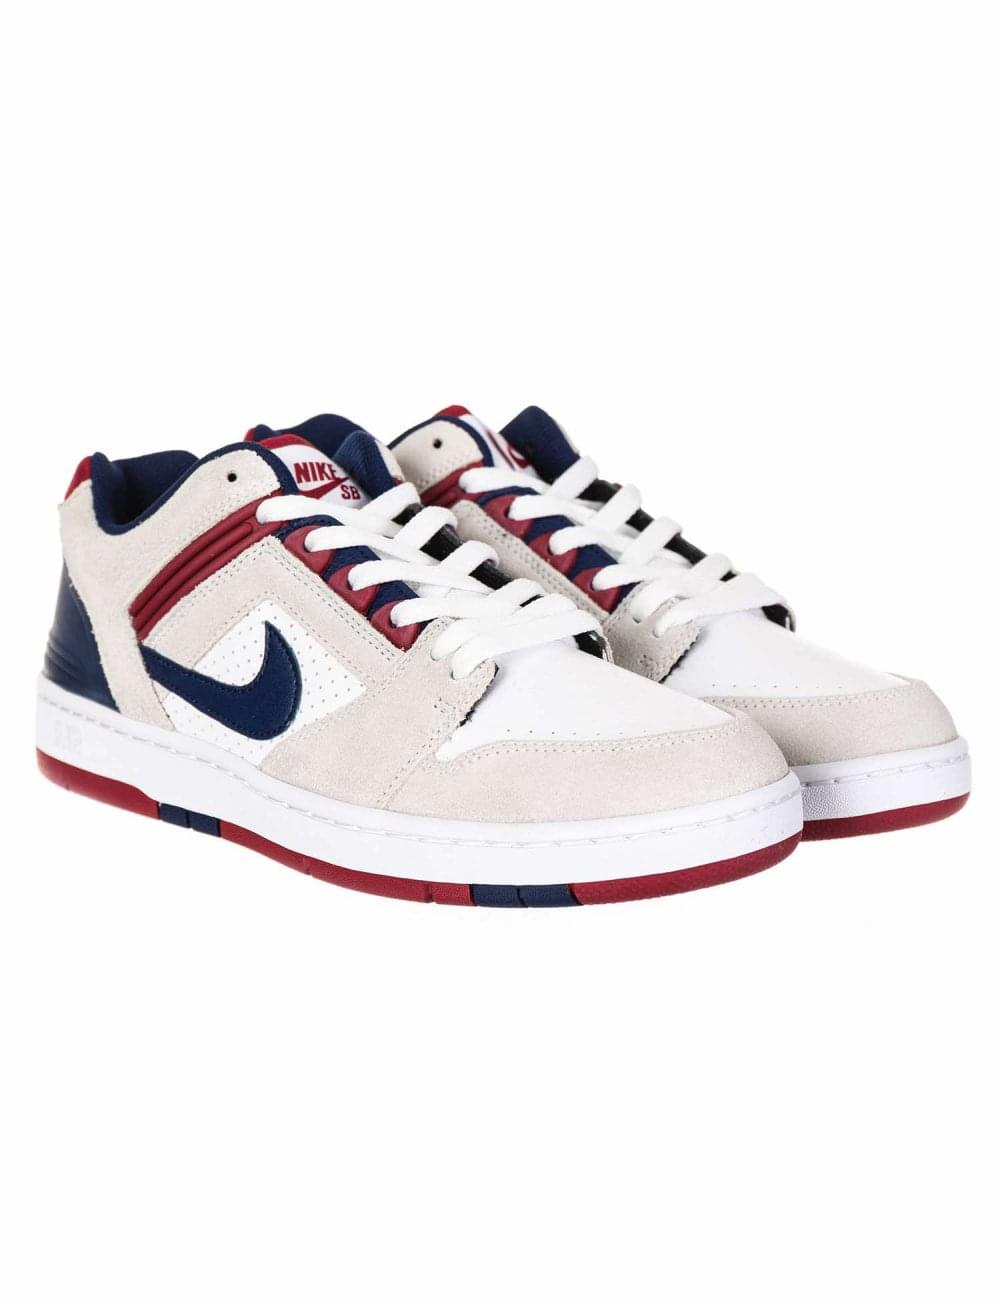 2423e1ab5e Air Force II Low Trainers - White/Blue Void/Red Crush